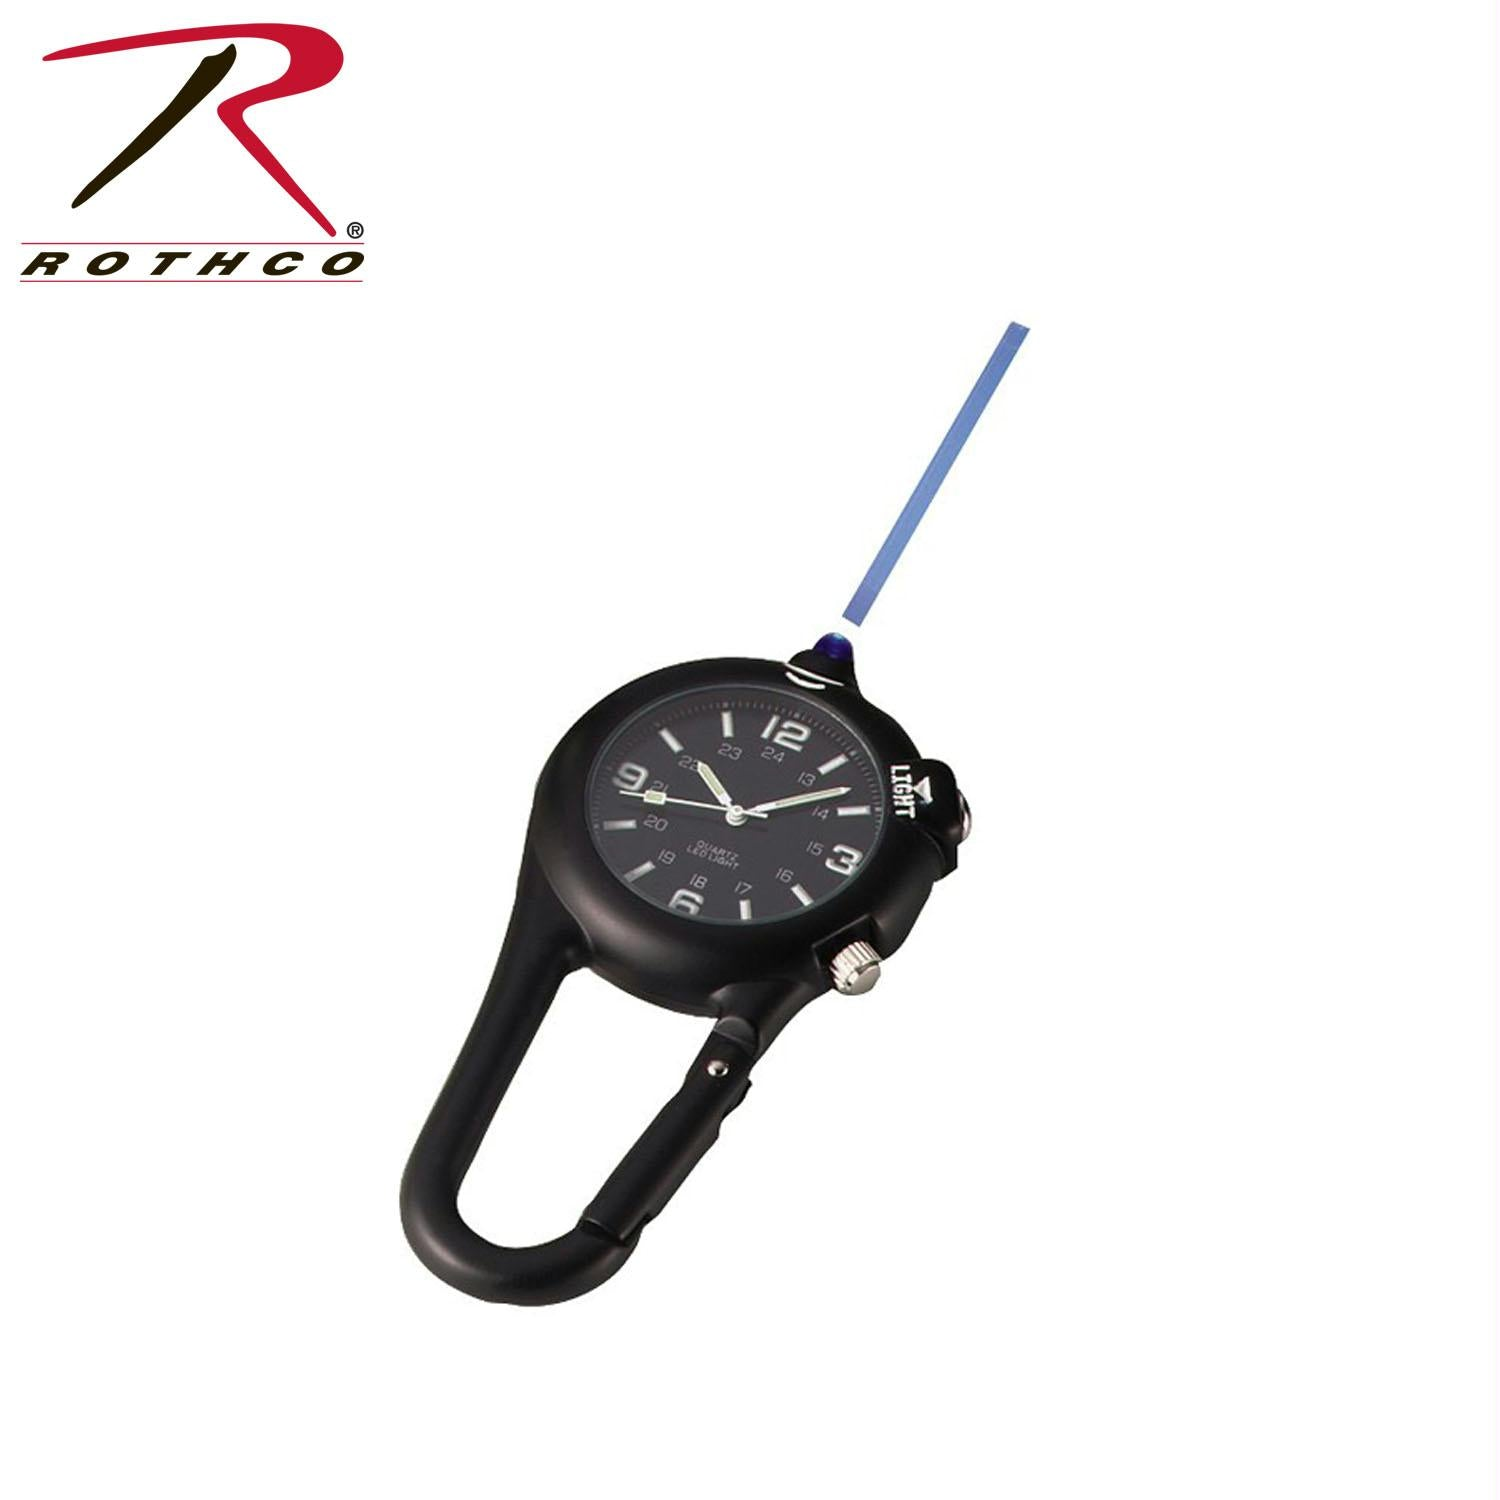 Rothco Clip Watch w/ LED Light - Black